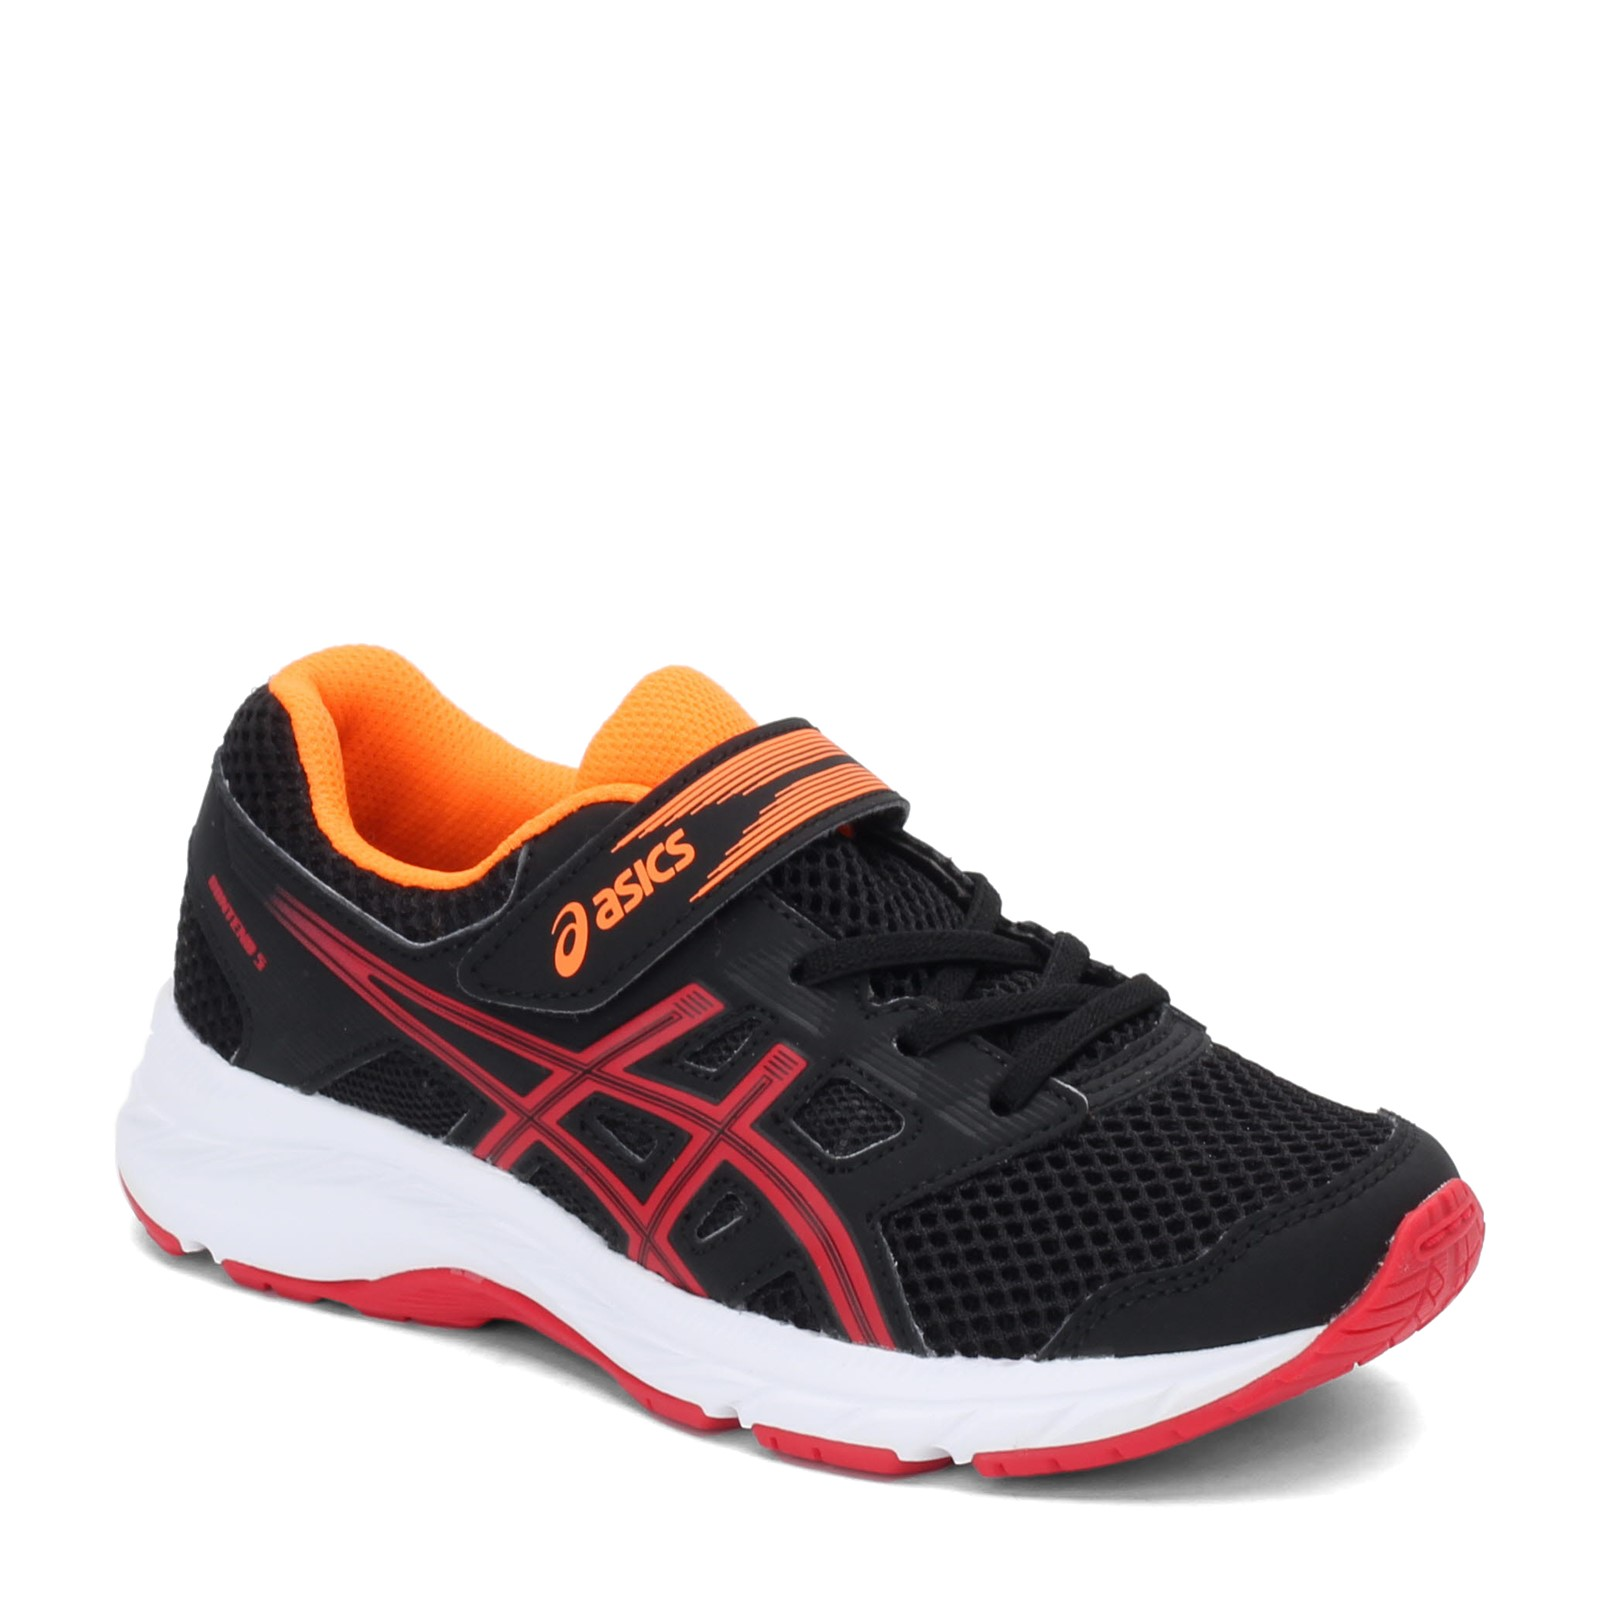 Boy's Asics, Gel Contend 5 PS Running Sneaker - Little Kid